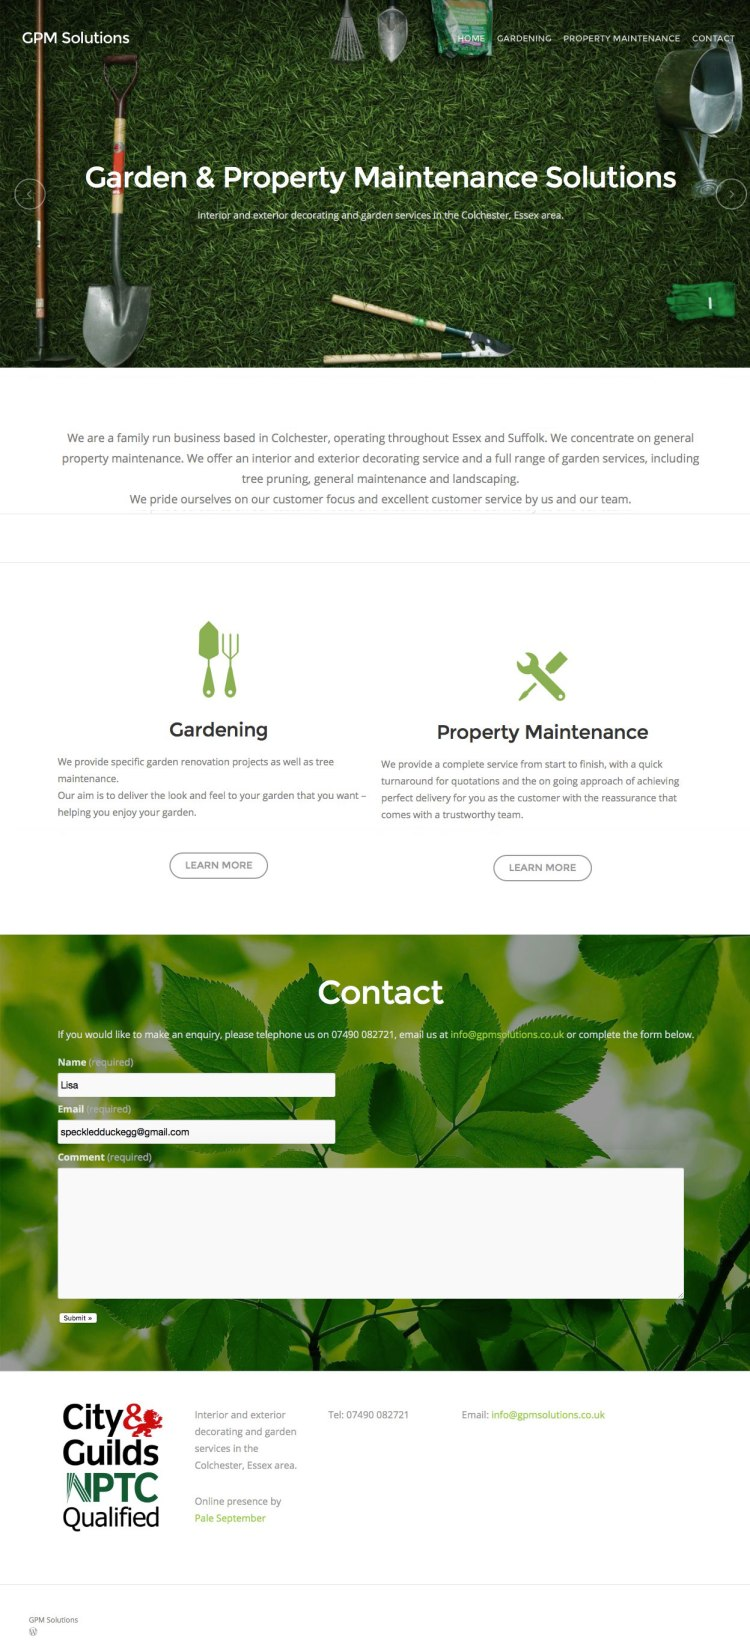 pale_september_web_design_colchester_gpm